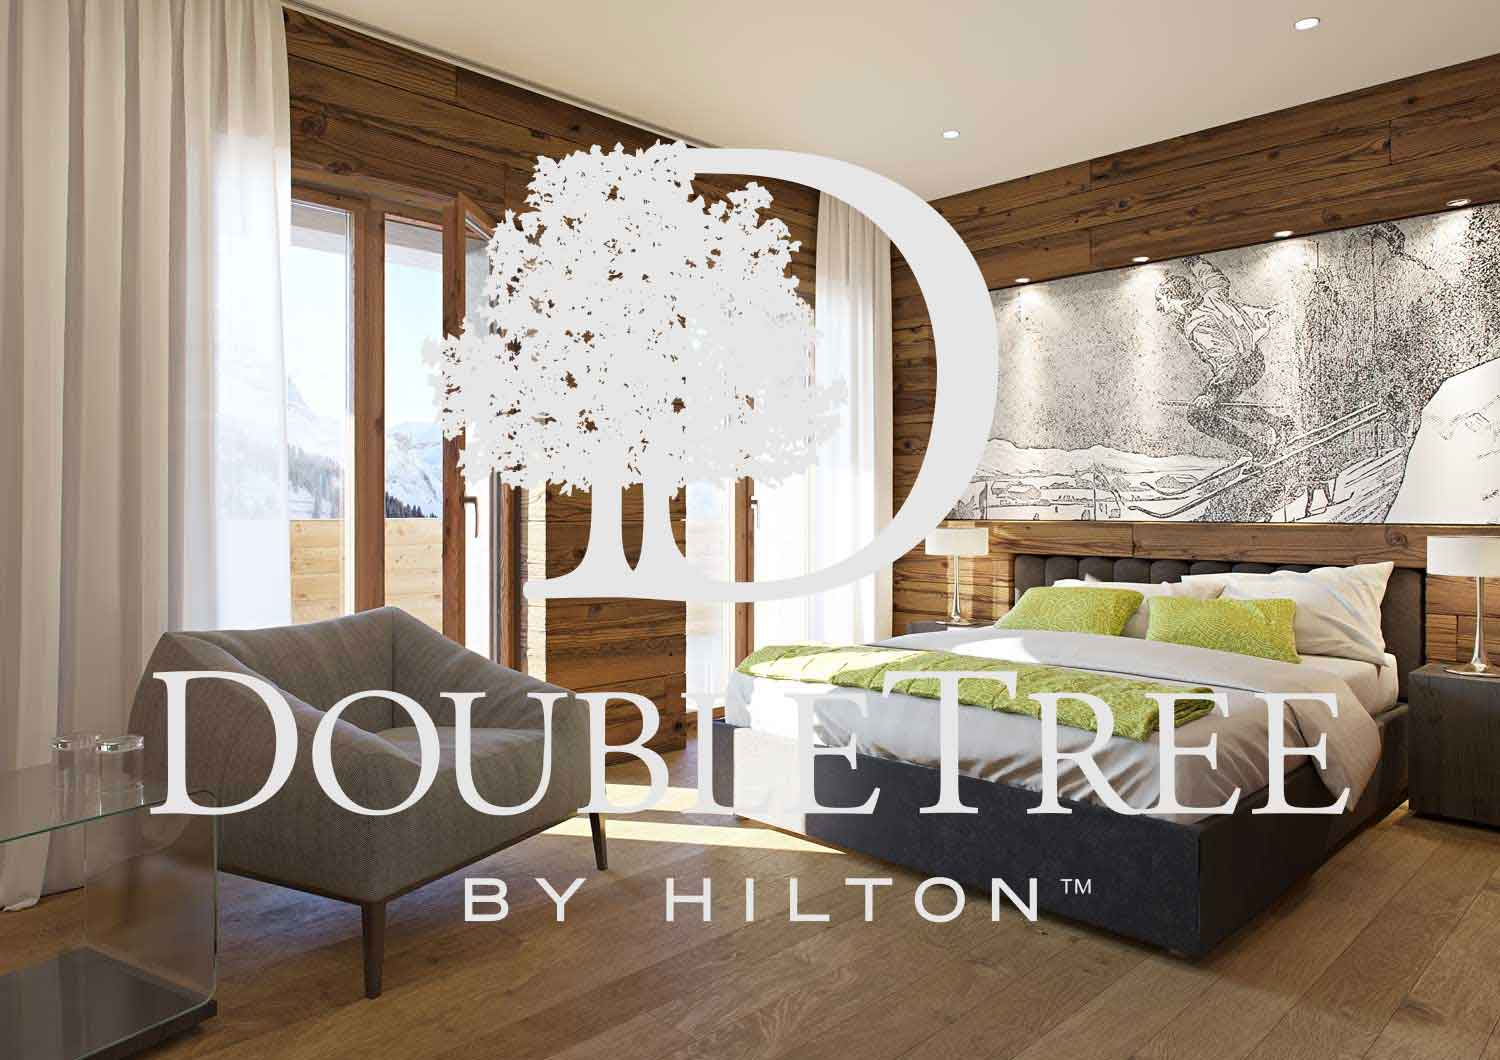 Double Tree Hilton Rooms and Suites - Ski Arlberg